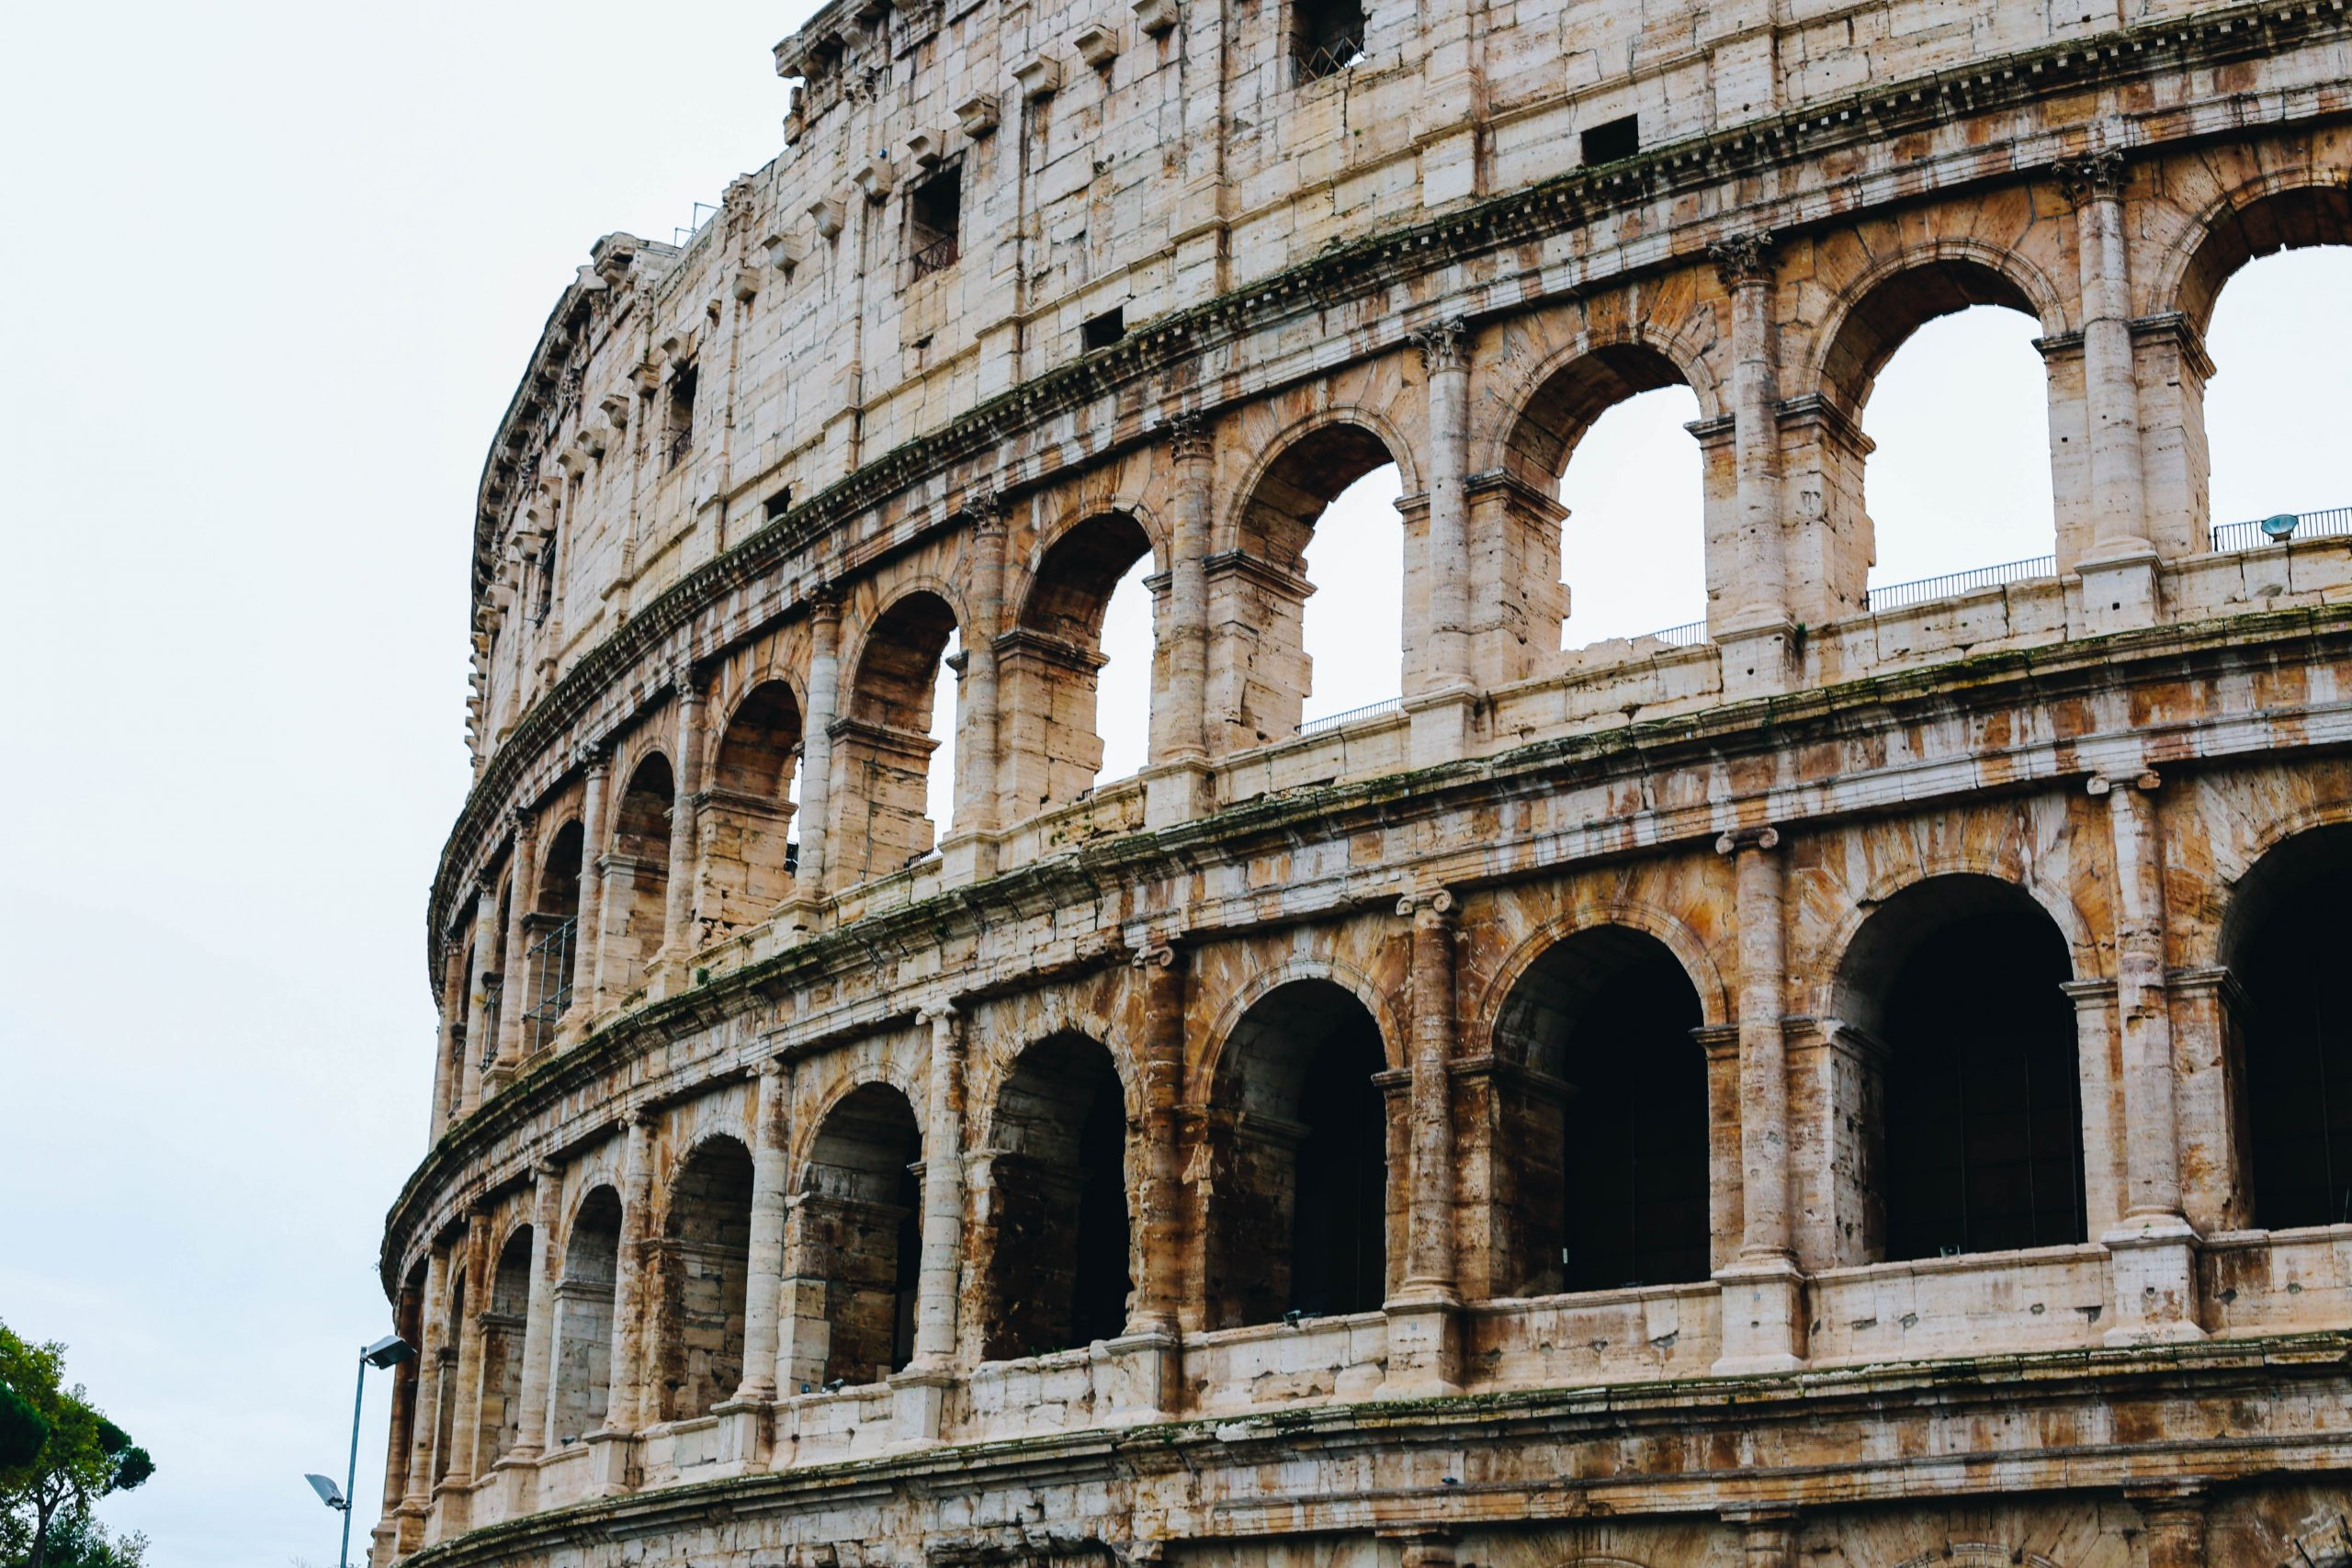 Tods restores Rome's colosseum